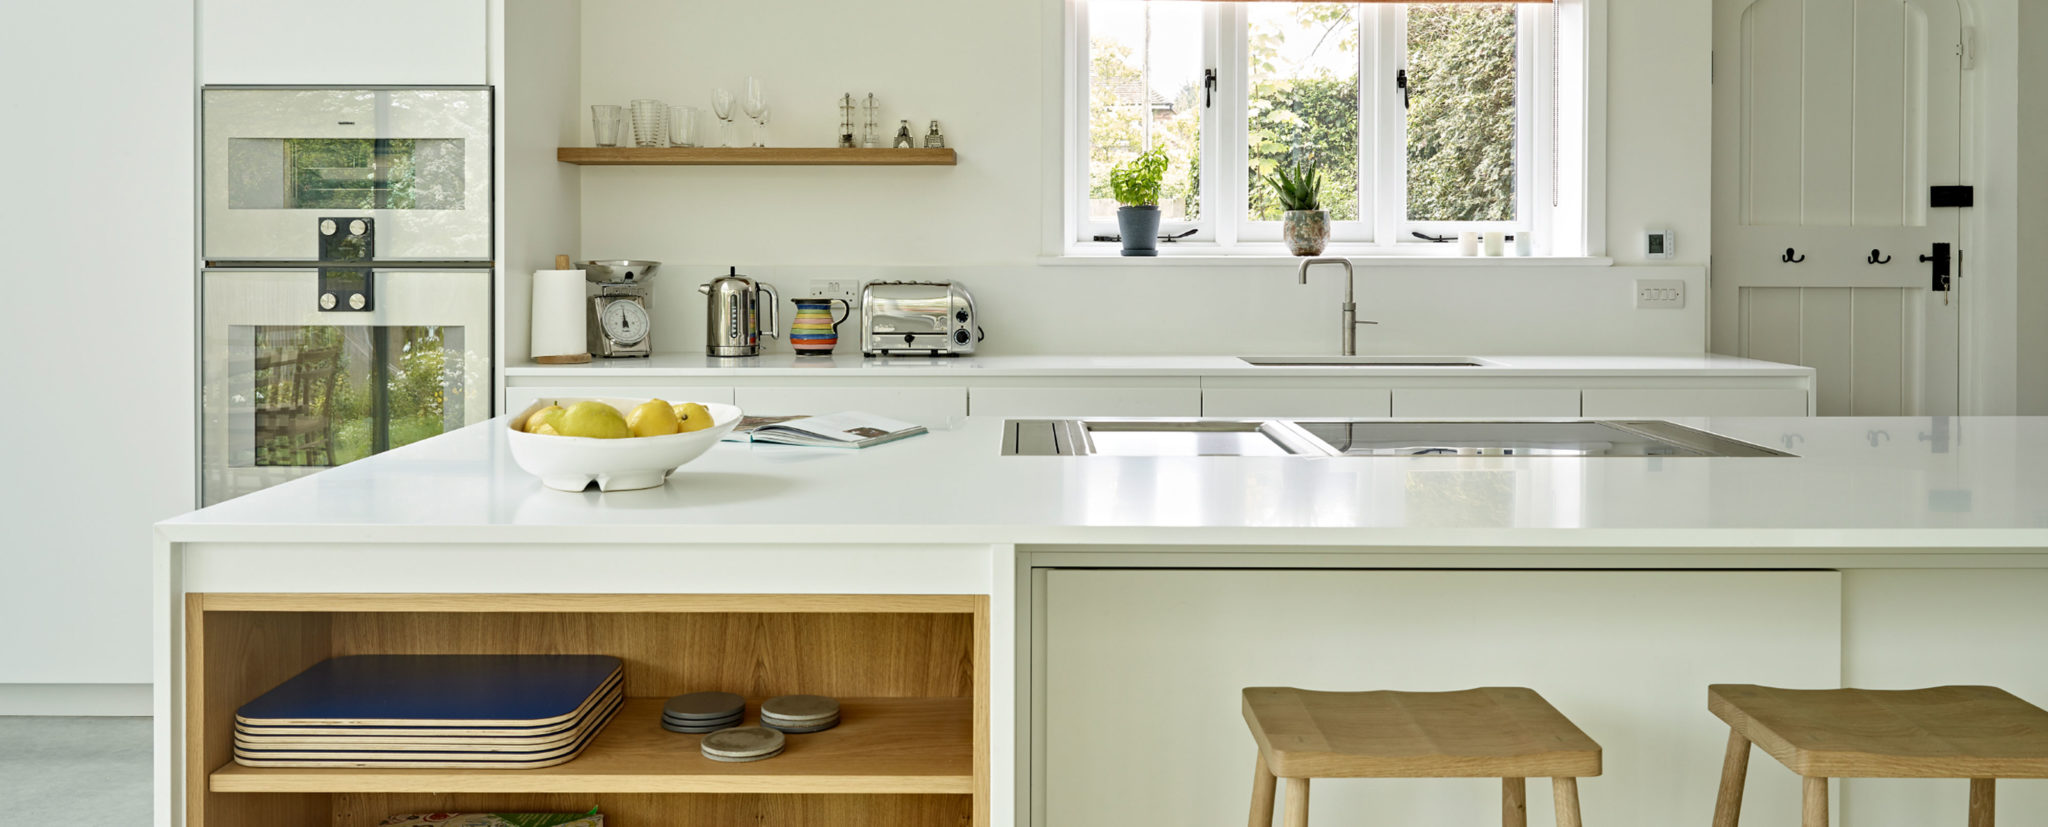 Minimalist scandi style white and light wood kitchen design